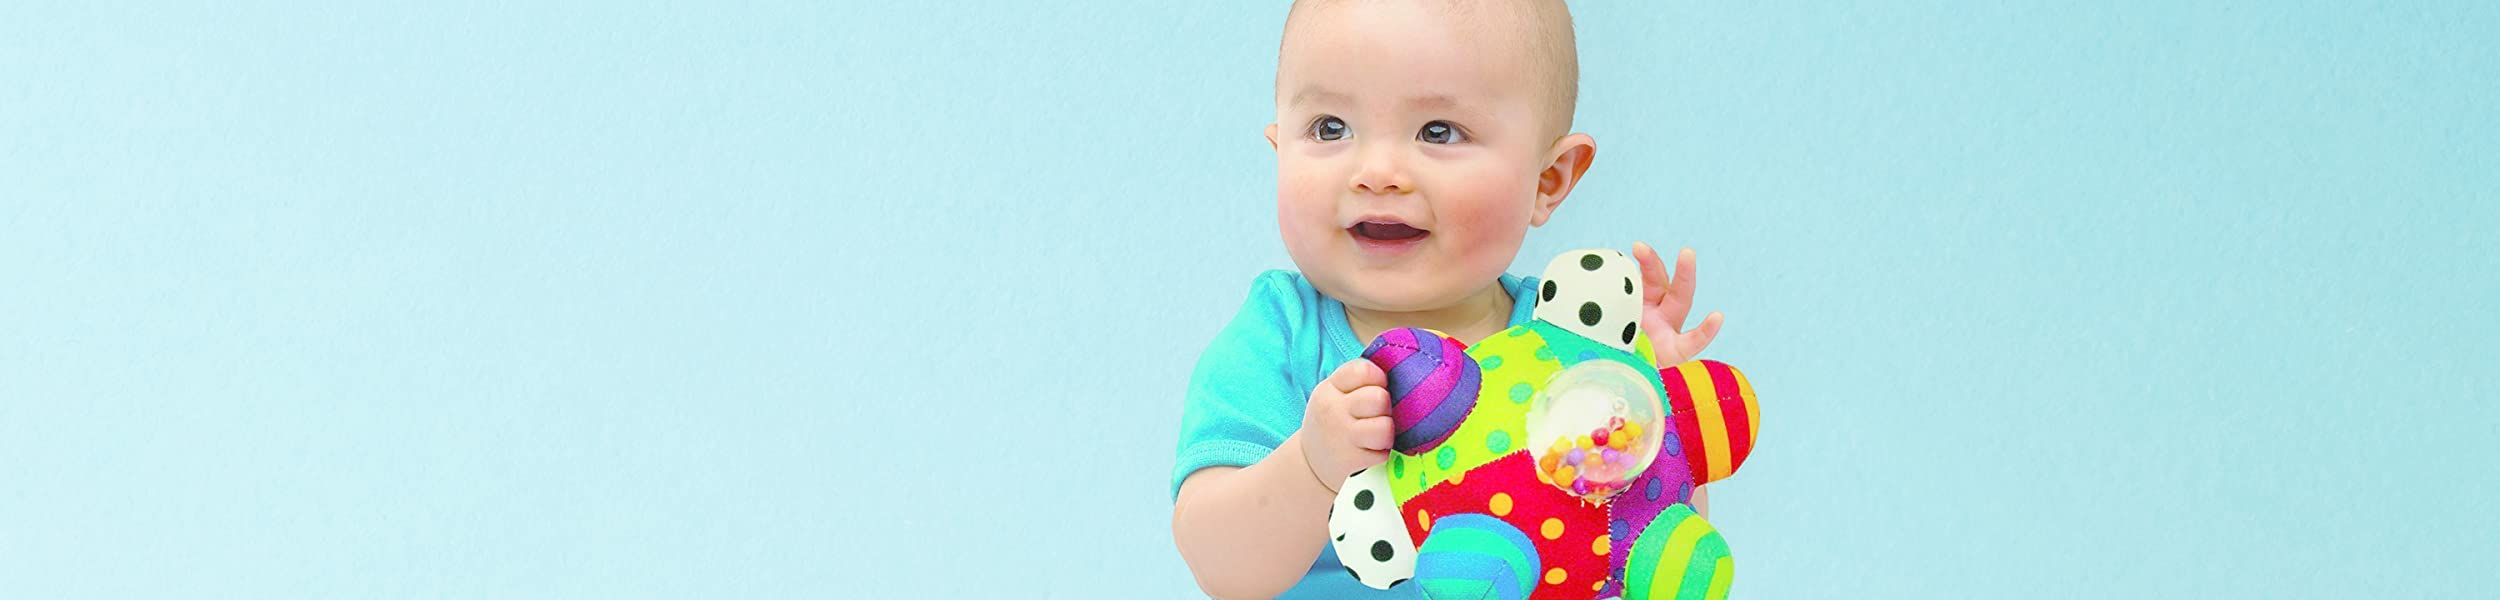 Amazon.com: Baby & Toddler Toys: Toys & Games: Push & Pull Toys, Toy ...